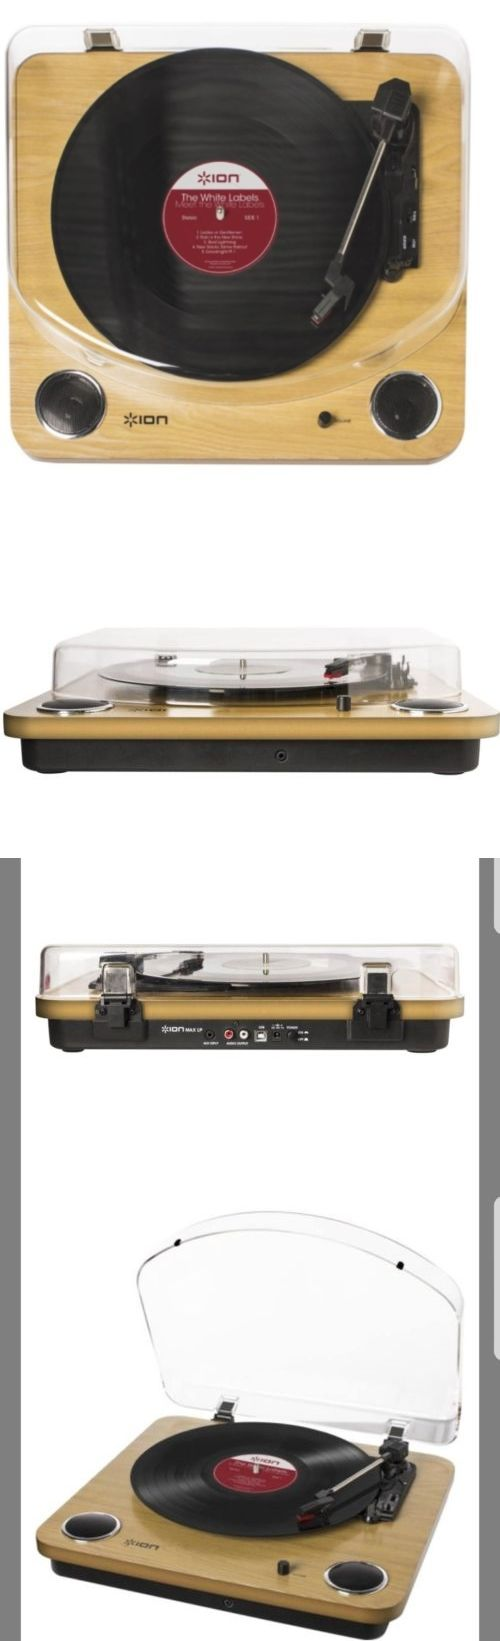 Record Players Home Turntables: Ion Audio Max Lp Conversion Turntable W Stereo Speakers Wood Grain Complete -> BUY IT NOW ONLY: $40 on eBay!